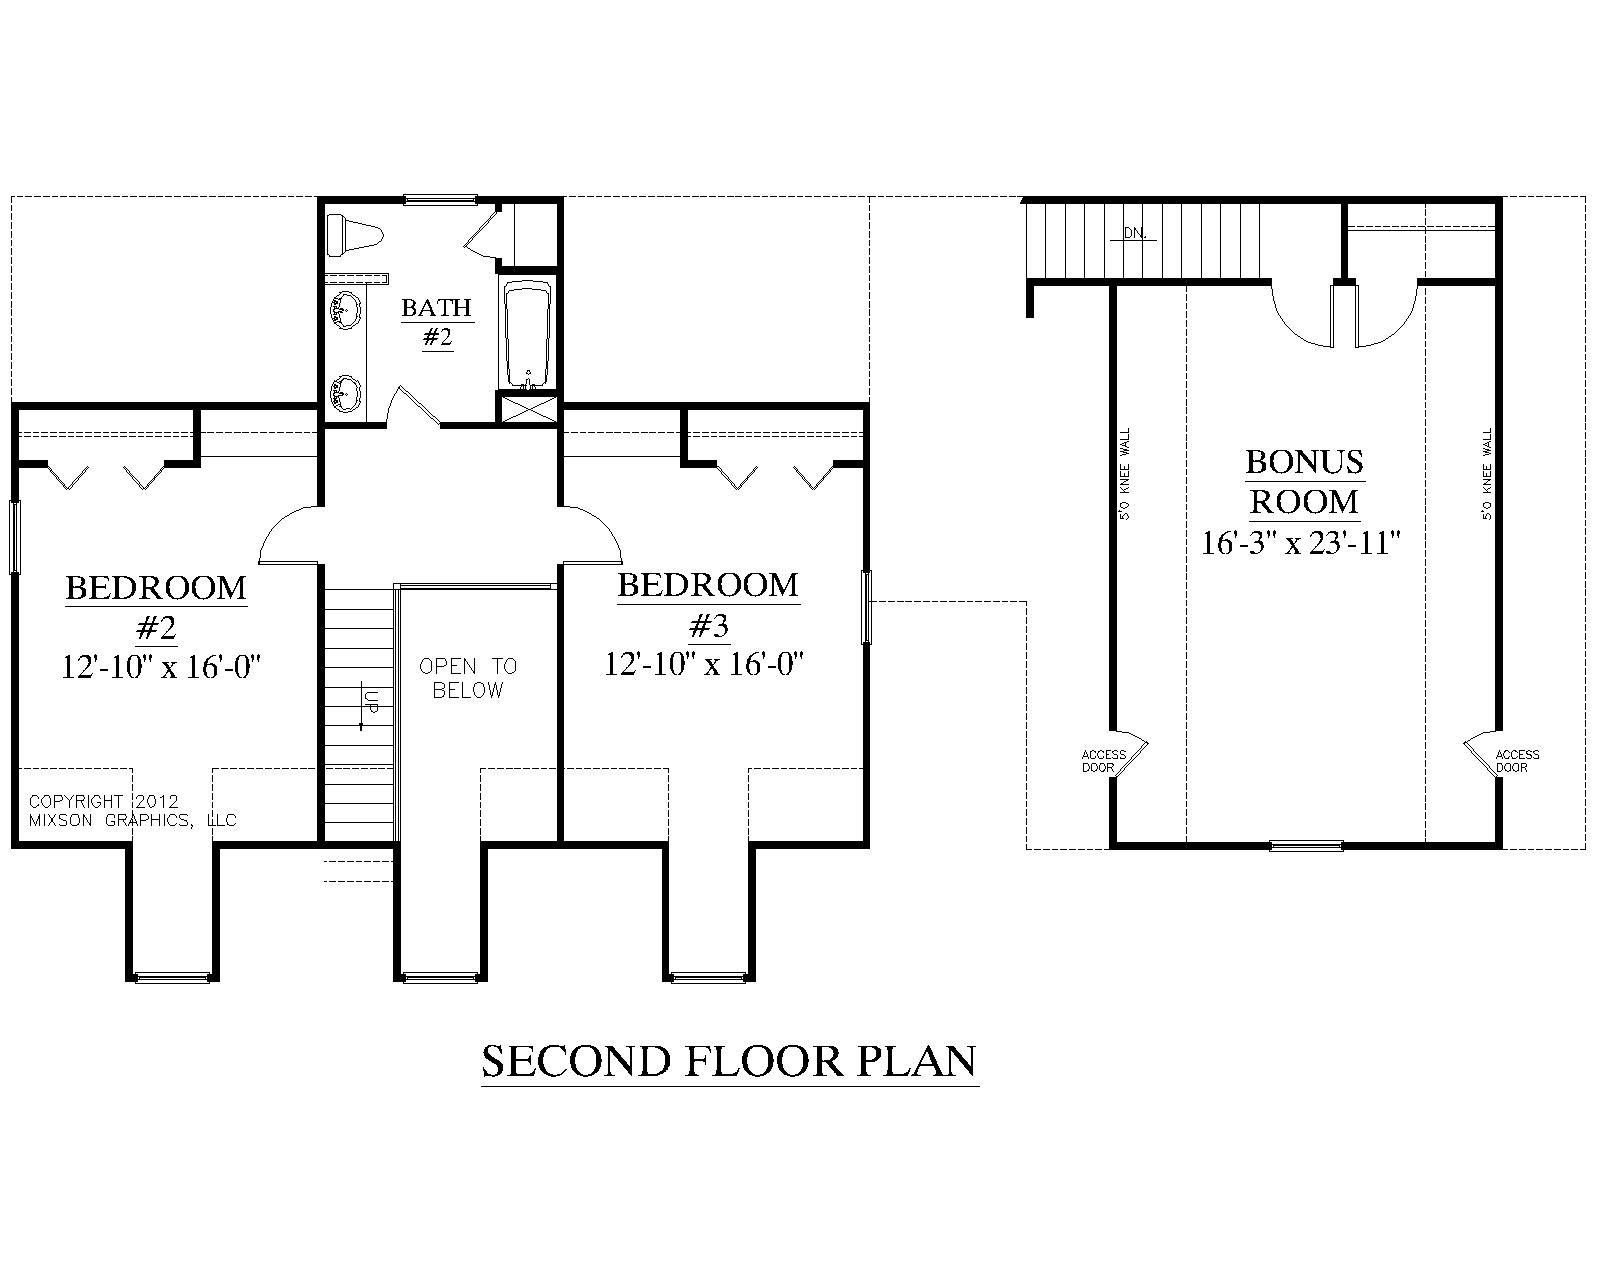 House plan 2091 b mayfield b second floor plan for One level home plans with bonus room